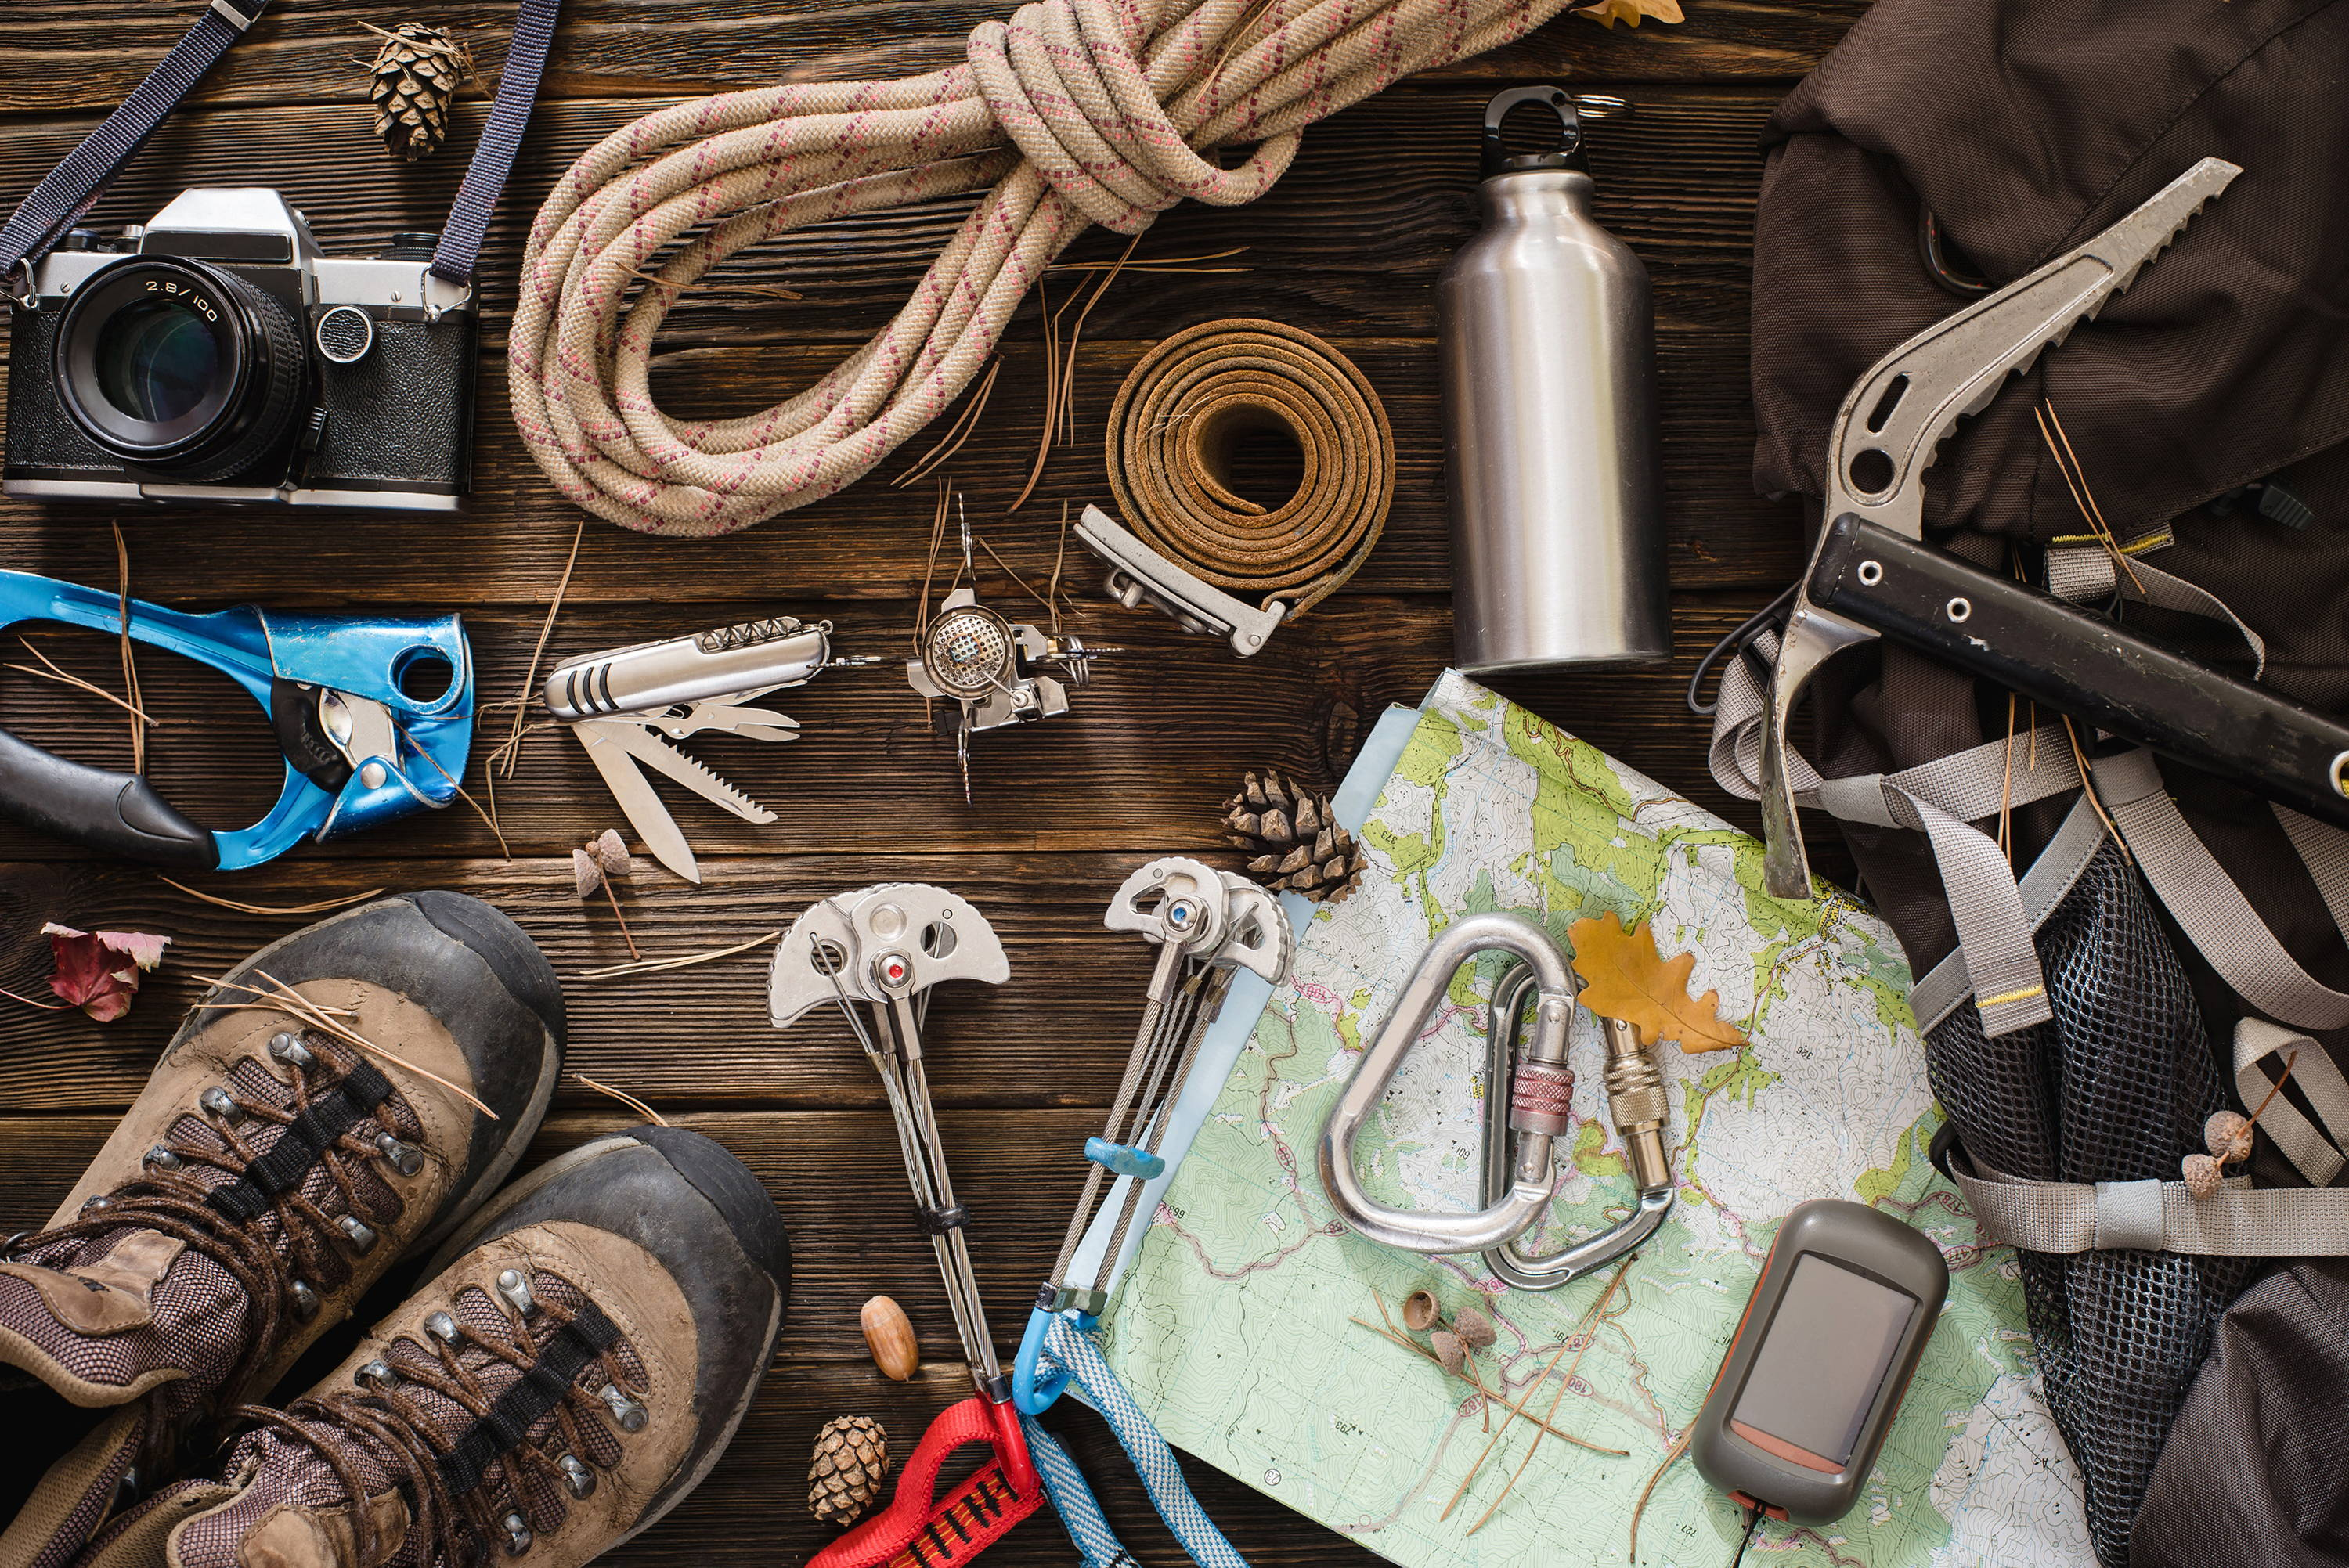 Survival Gear Systems, Survivalist spring cleaning